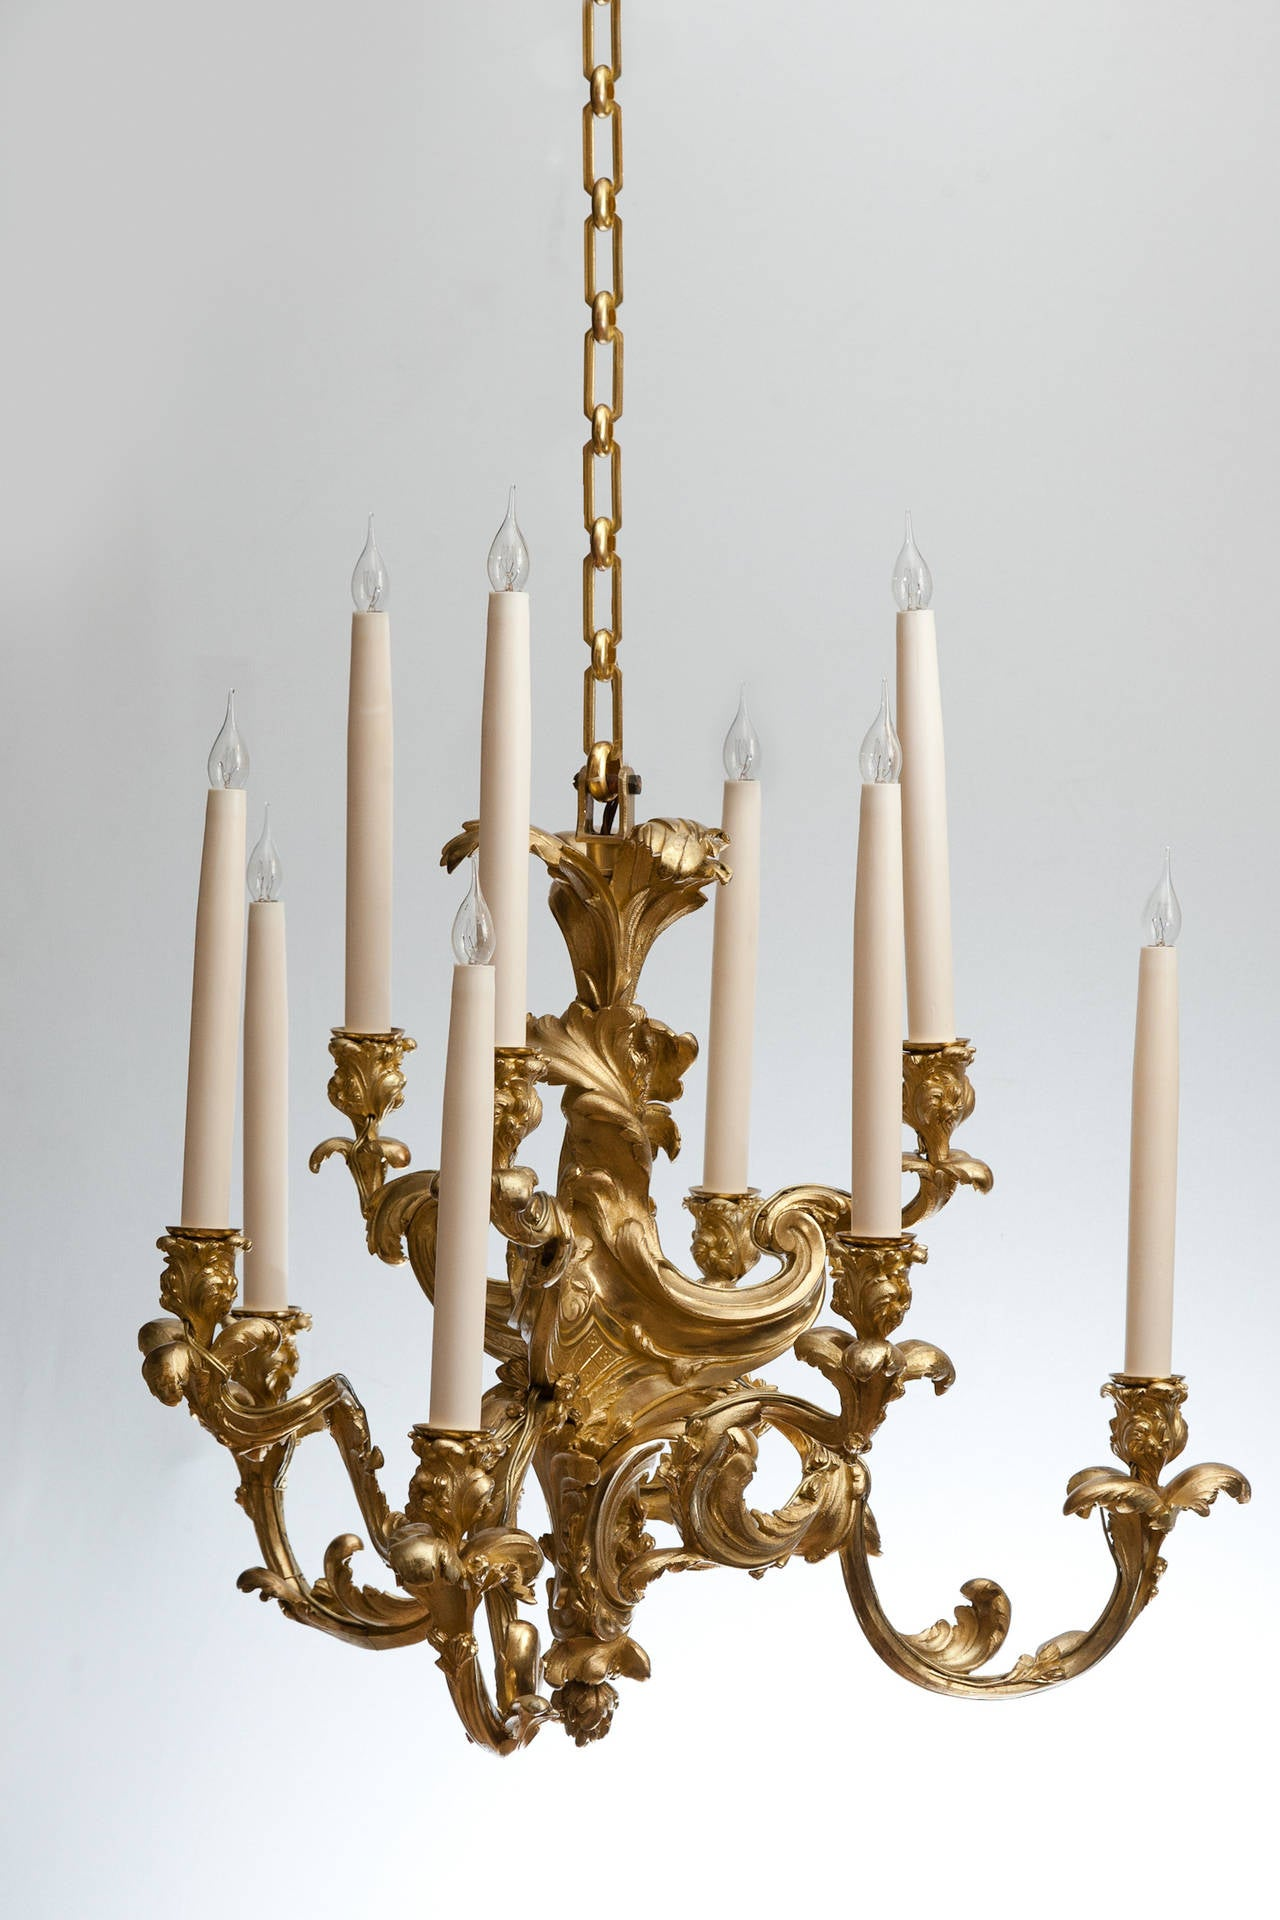 Nine Arm Rococo Gilt Bronze Chandelier For Sale at 1stdibs